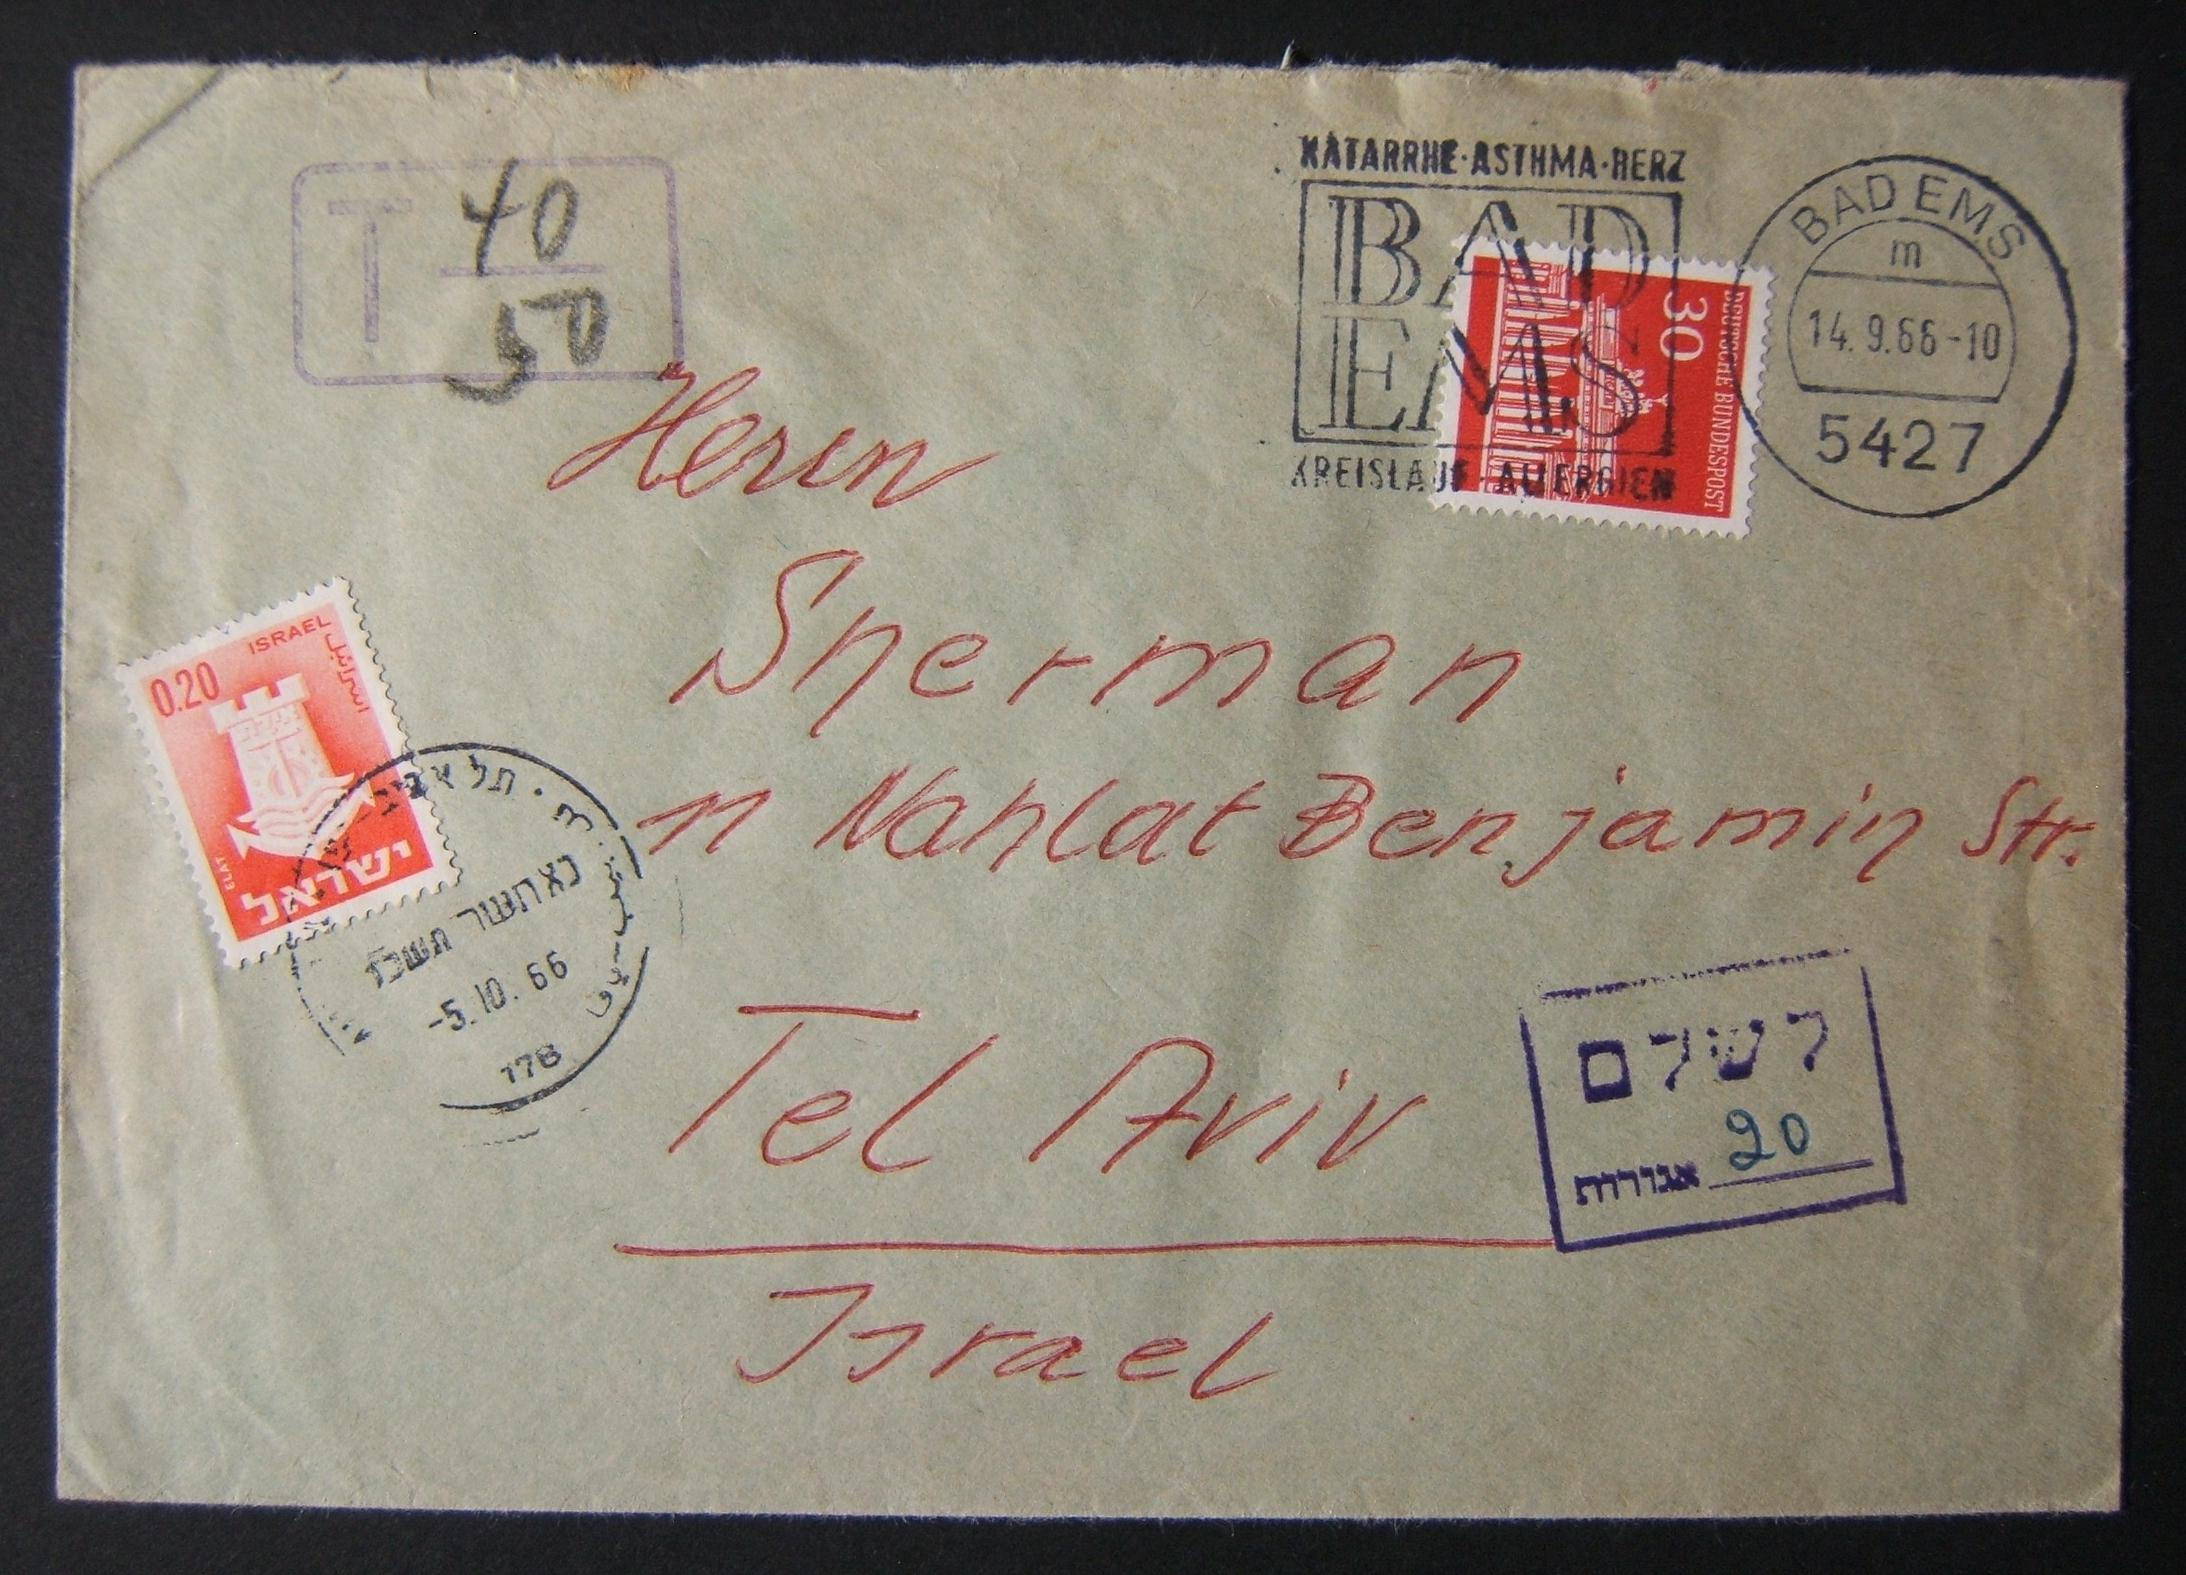 1966 incoming German taxed mail: 14-9-66 surface mailed commercial cover ex BAD EMS to TLV underfranked at 0.30DM and taxed 0.20L in Israel, paid 5-10-66 using 1965/67 1st Town Emb